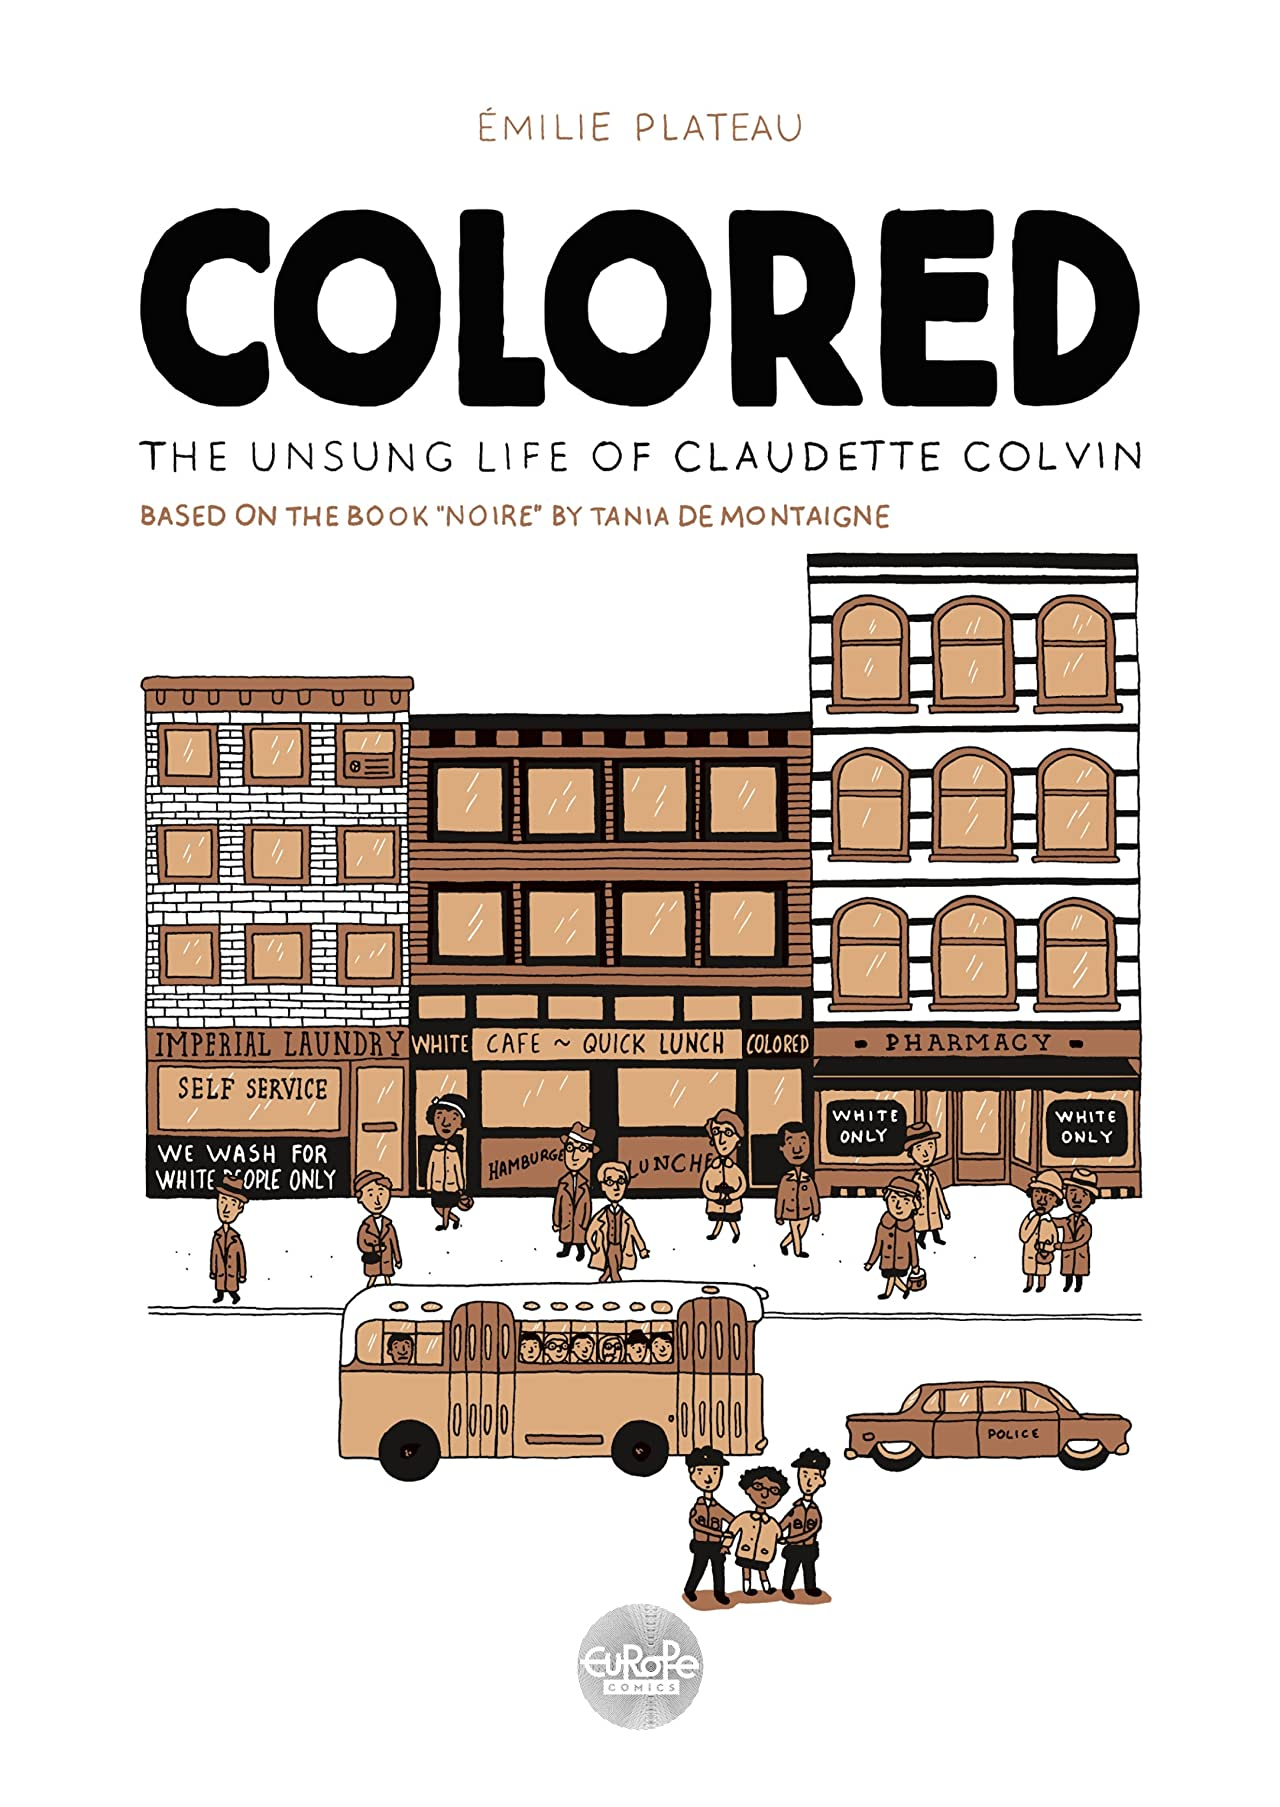 Colored: The Unsung Life of Claudette Colvin